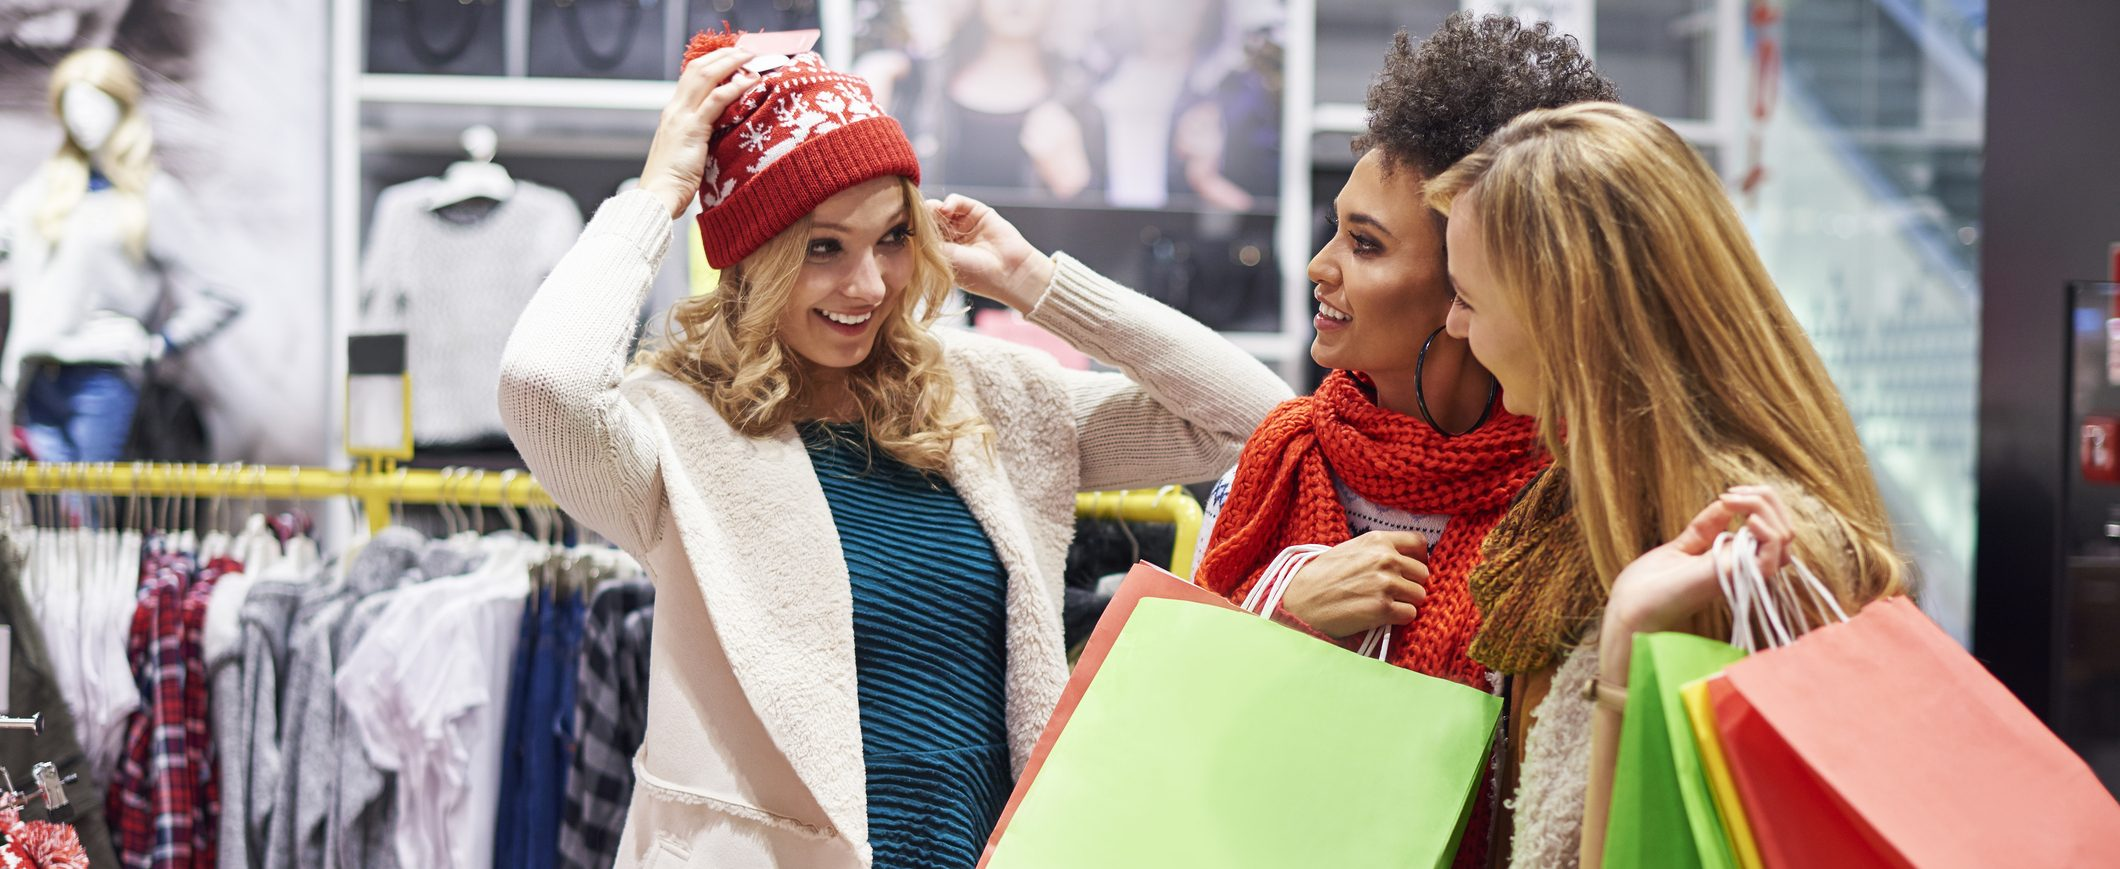 Shopping holiday sales is a great way to save money—but it's only the start